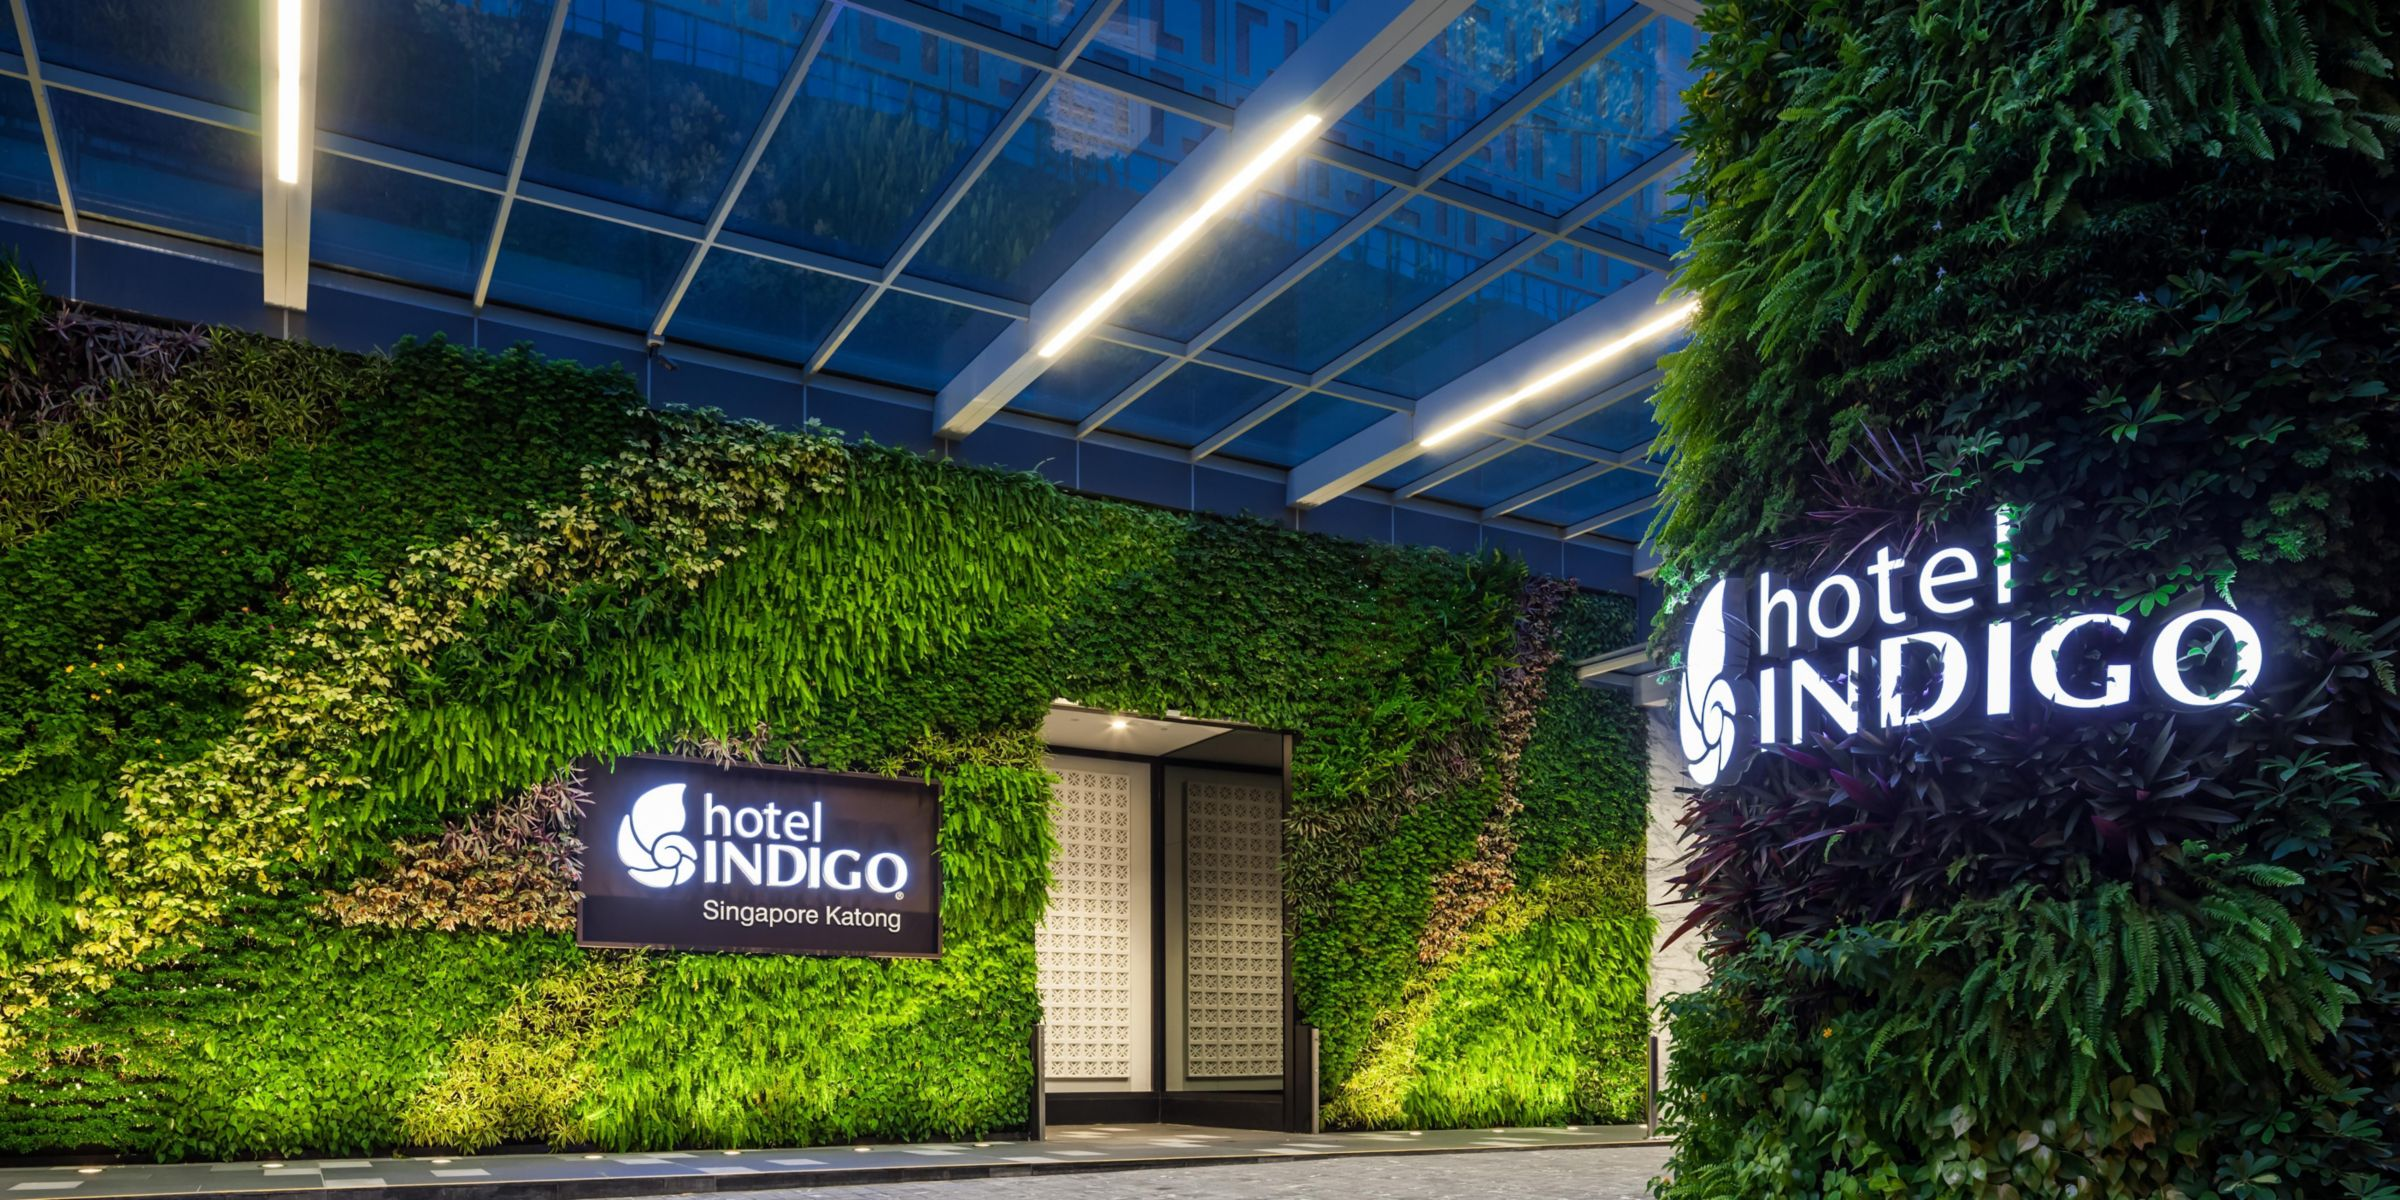 A Vertical Garden Welcomes Guests At The Entrance